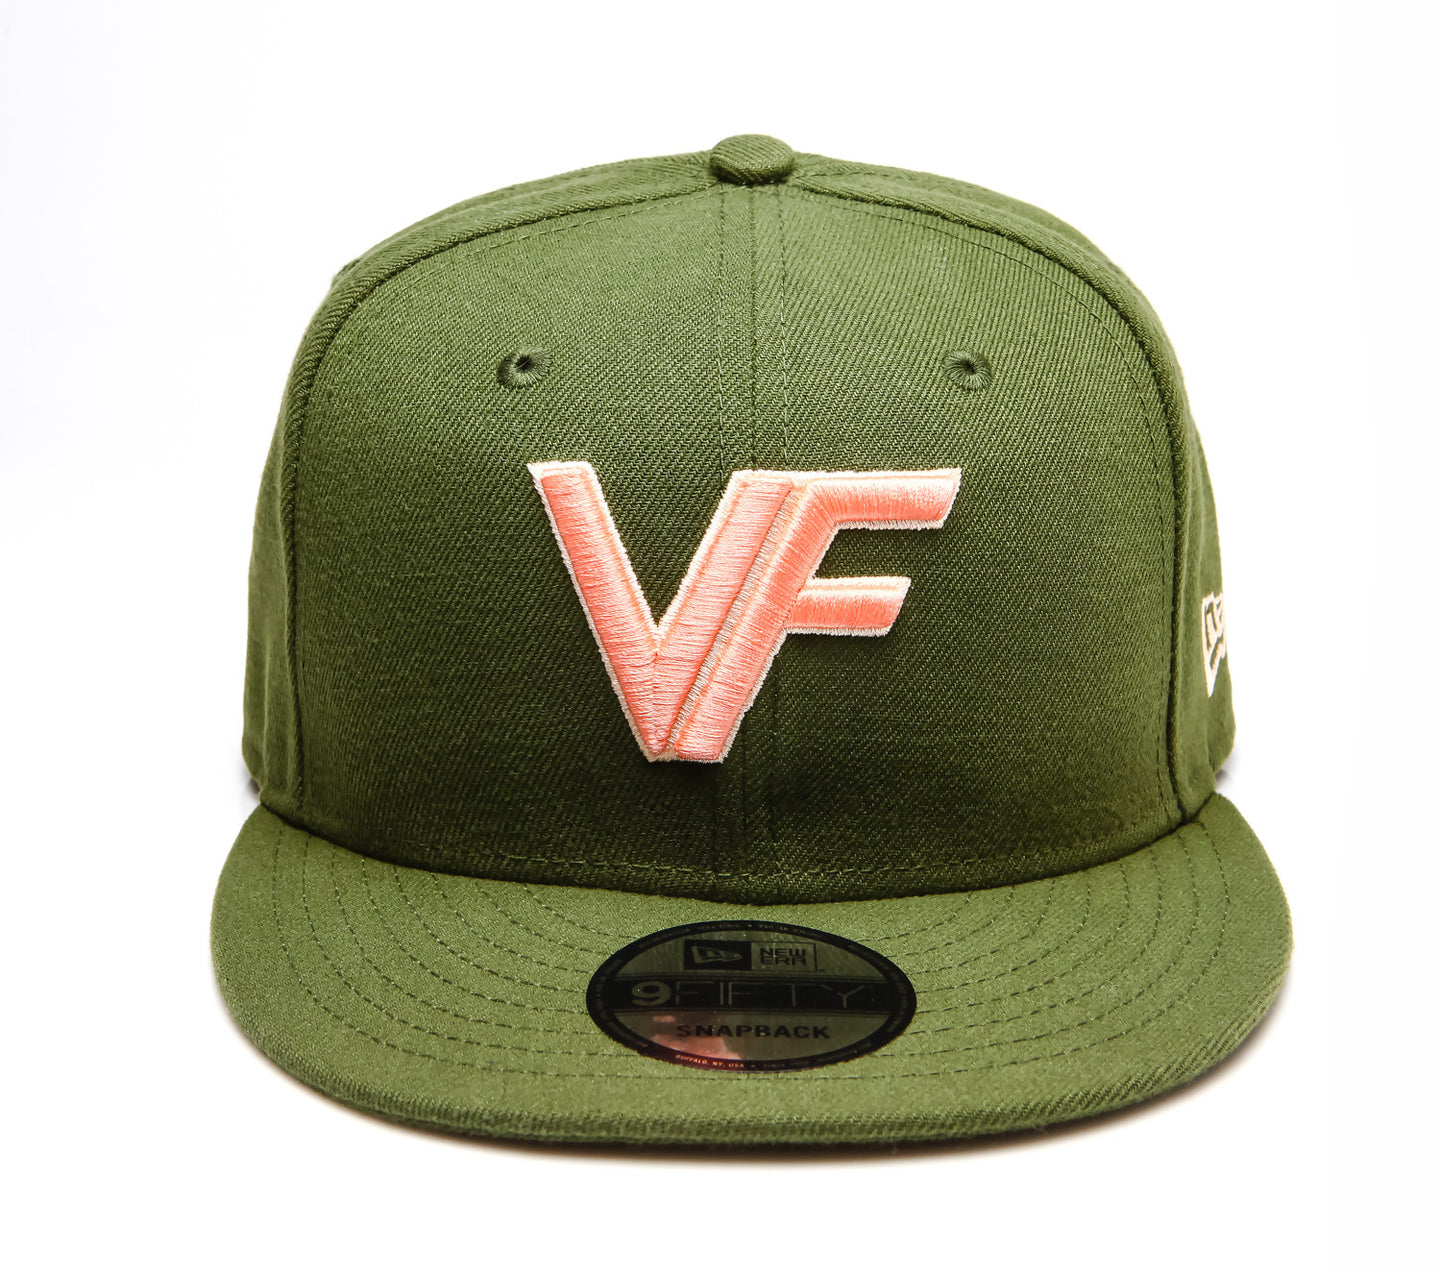 VF Green SnapBack 1, The Vintage Frames Company , glasses frames, eyeglasses online, eyeglass frames, mens glasses, womens glasses, buy glasses online, designer eyeglasses, vintage sunglasses, retro sunglasses, vintage glasses, sunglass, eyeglass, glasses, lens, vintage frames company, vf